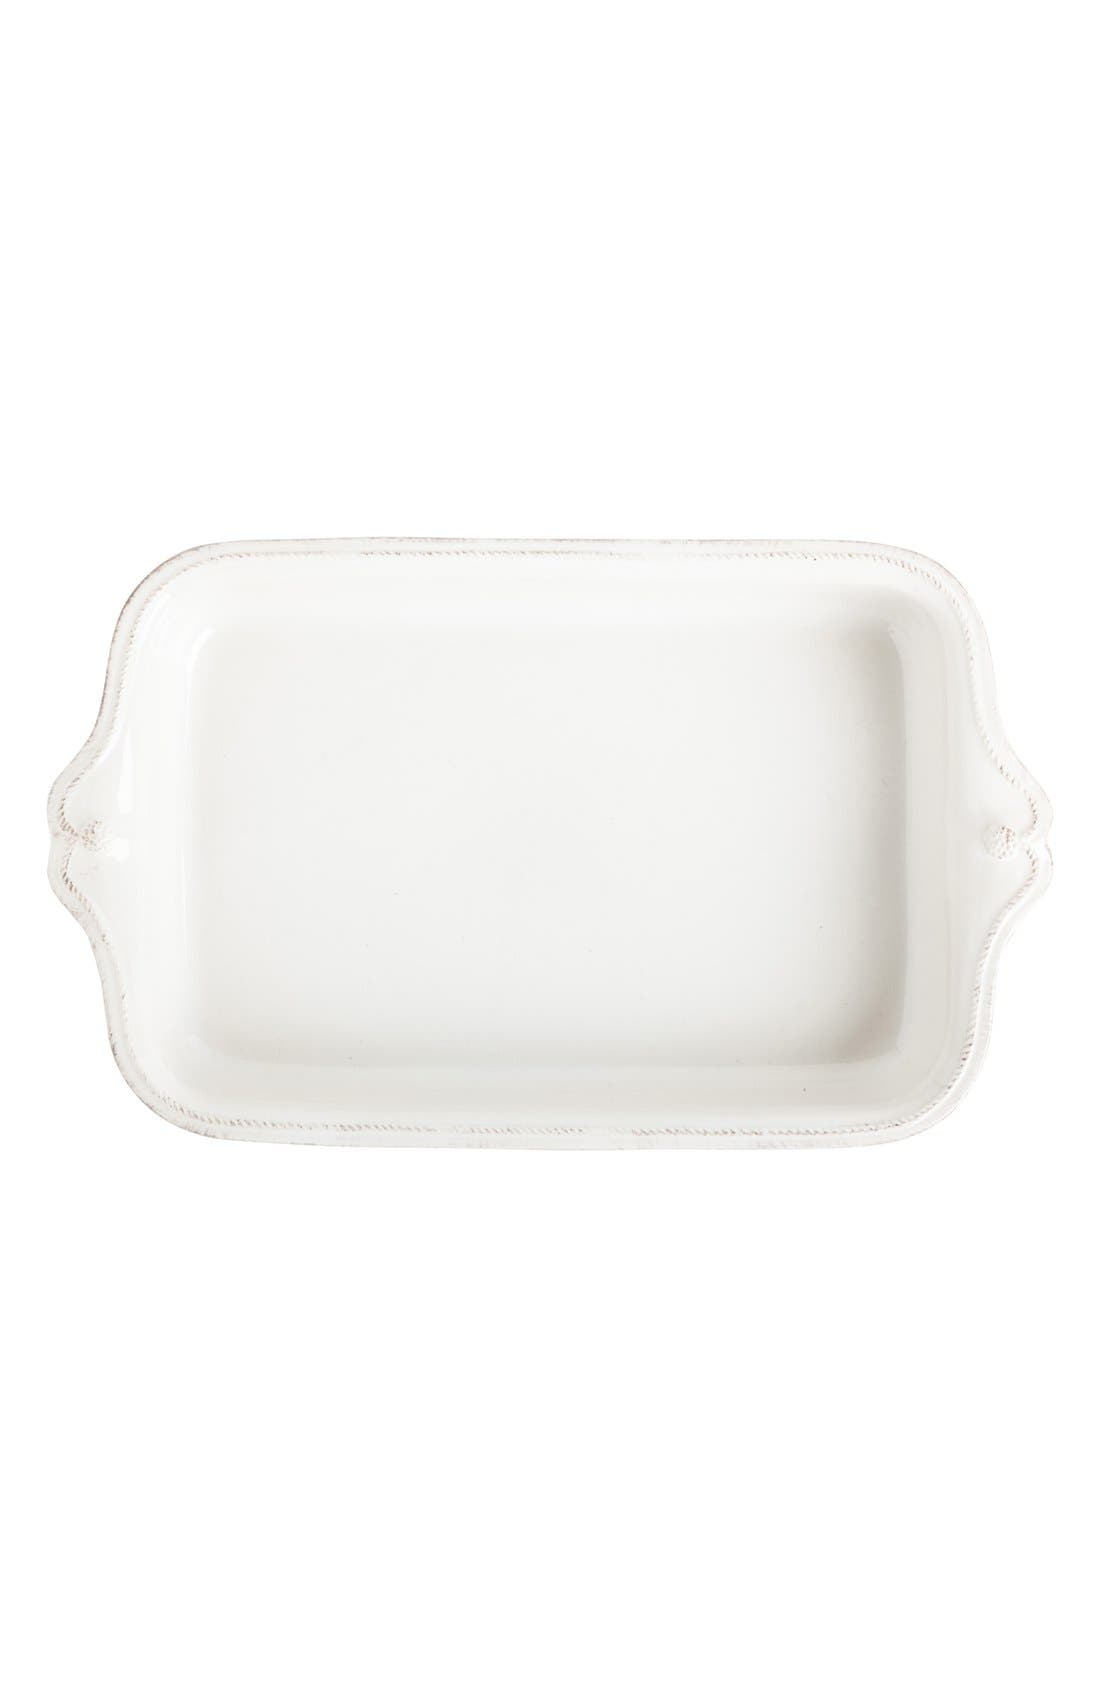 'Berry and Thread' Rectangular Baking Dish,                         Main,                         color, Whitewash